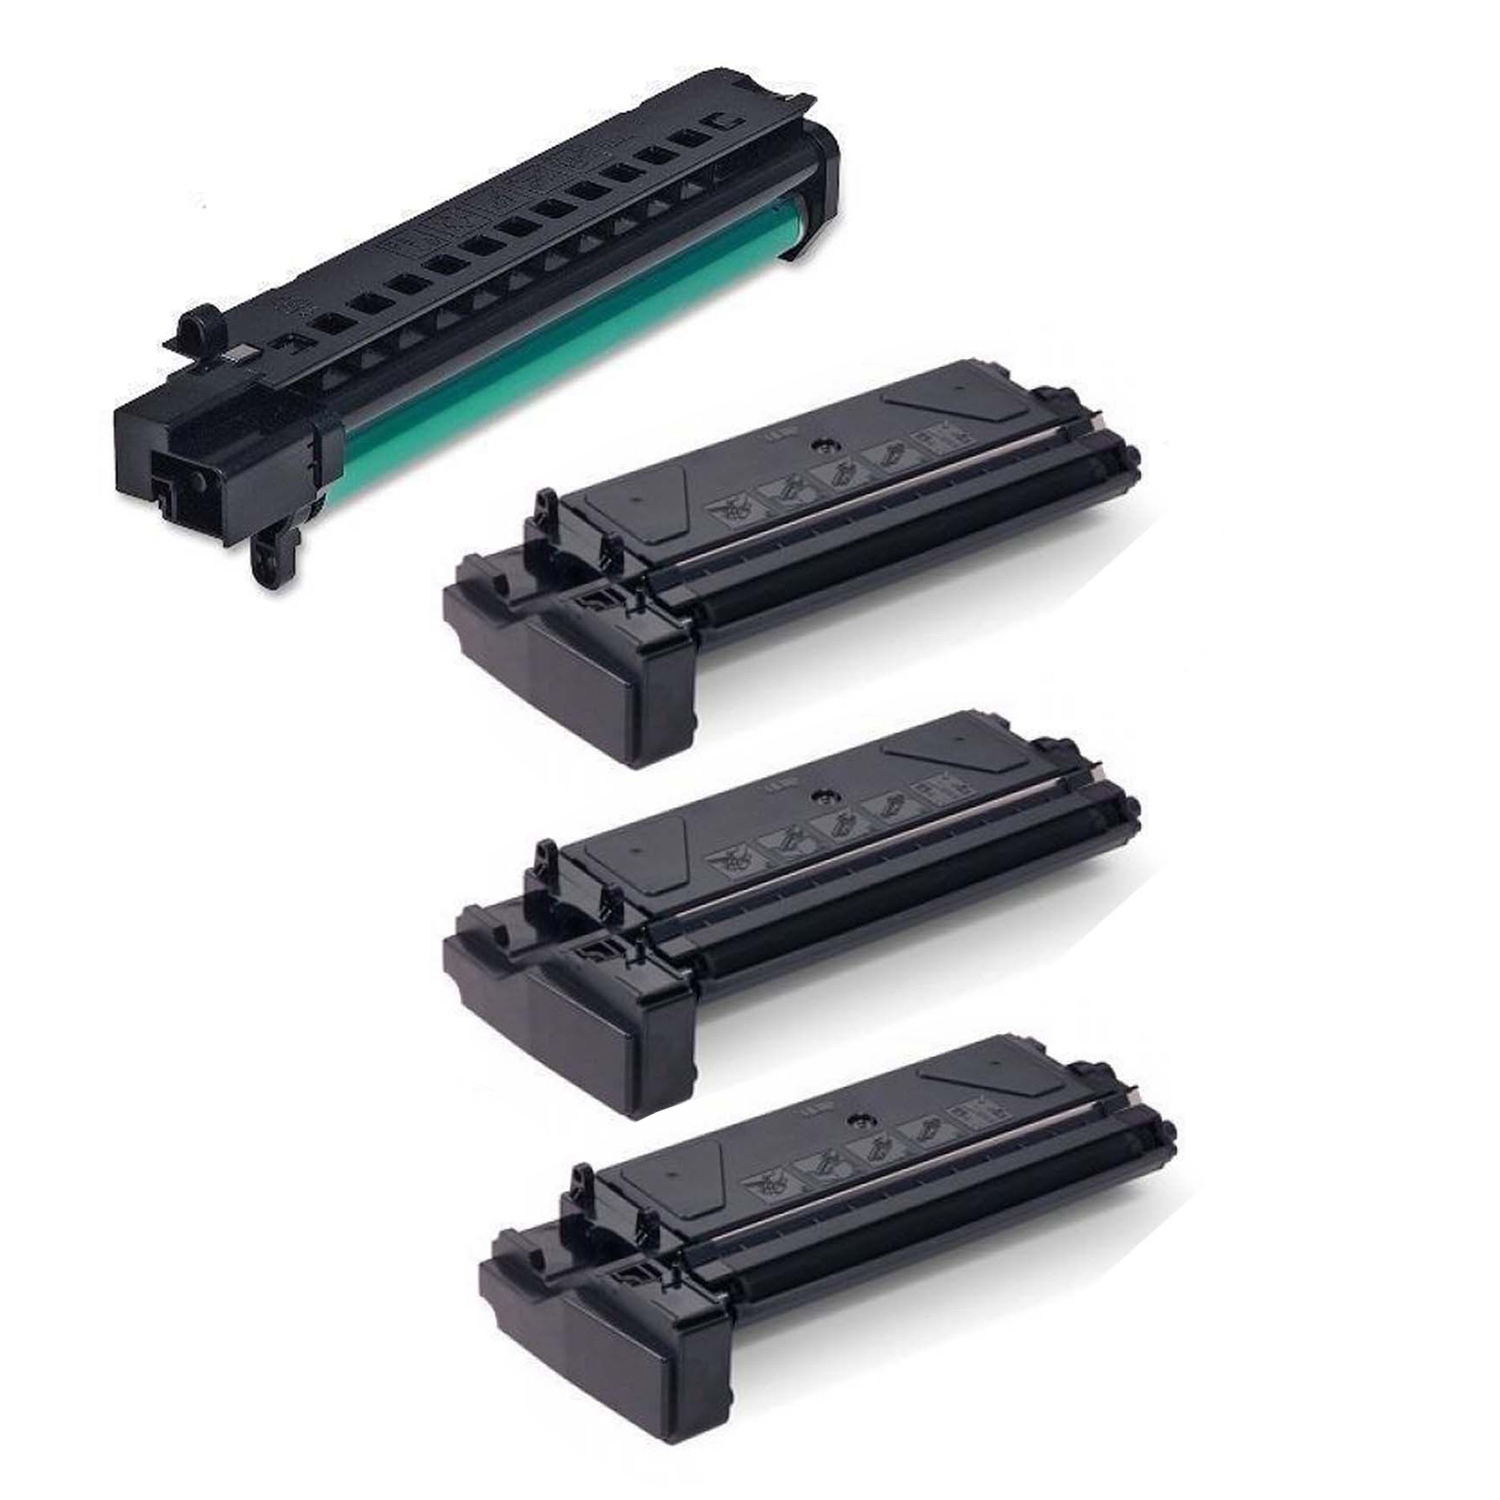 Office Mountain 2-Pack Remanufactured Black Toner & Drum Cartridge Xerox 106R00584 + 113R00663 for Xerox... by Office Mountain